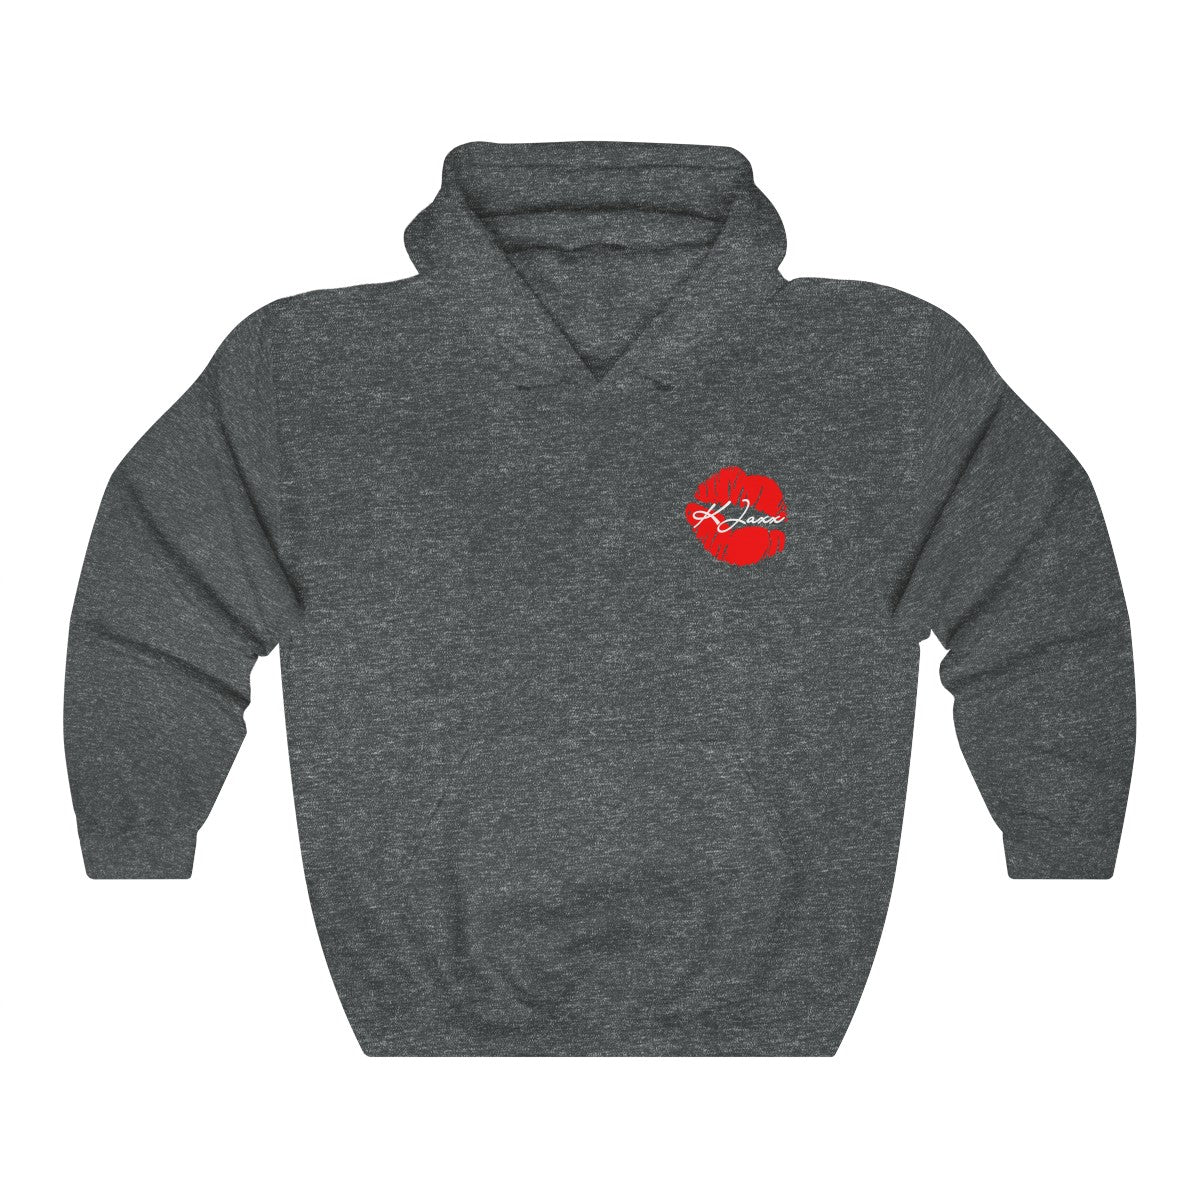 Krissy Jaxx Hooded Sweatshirt